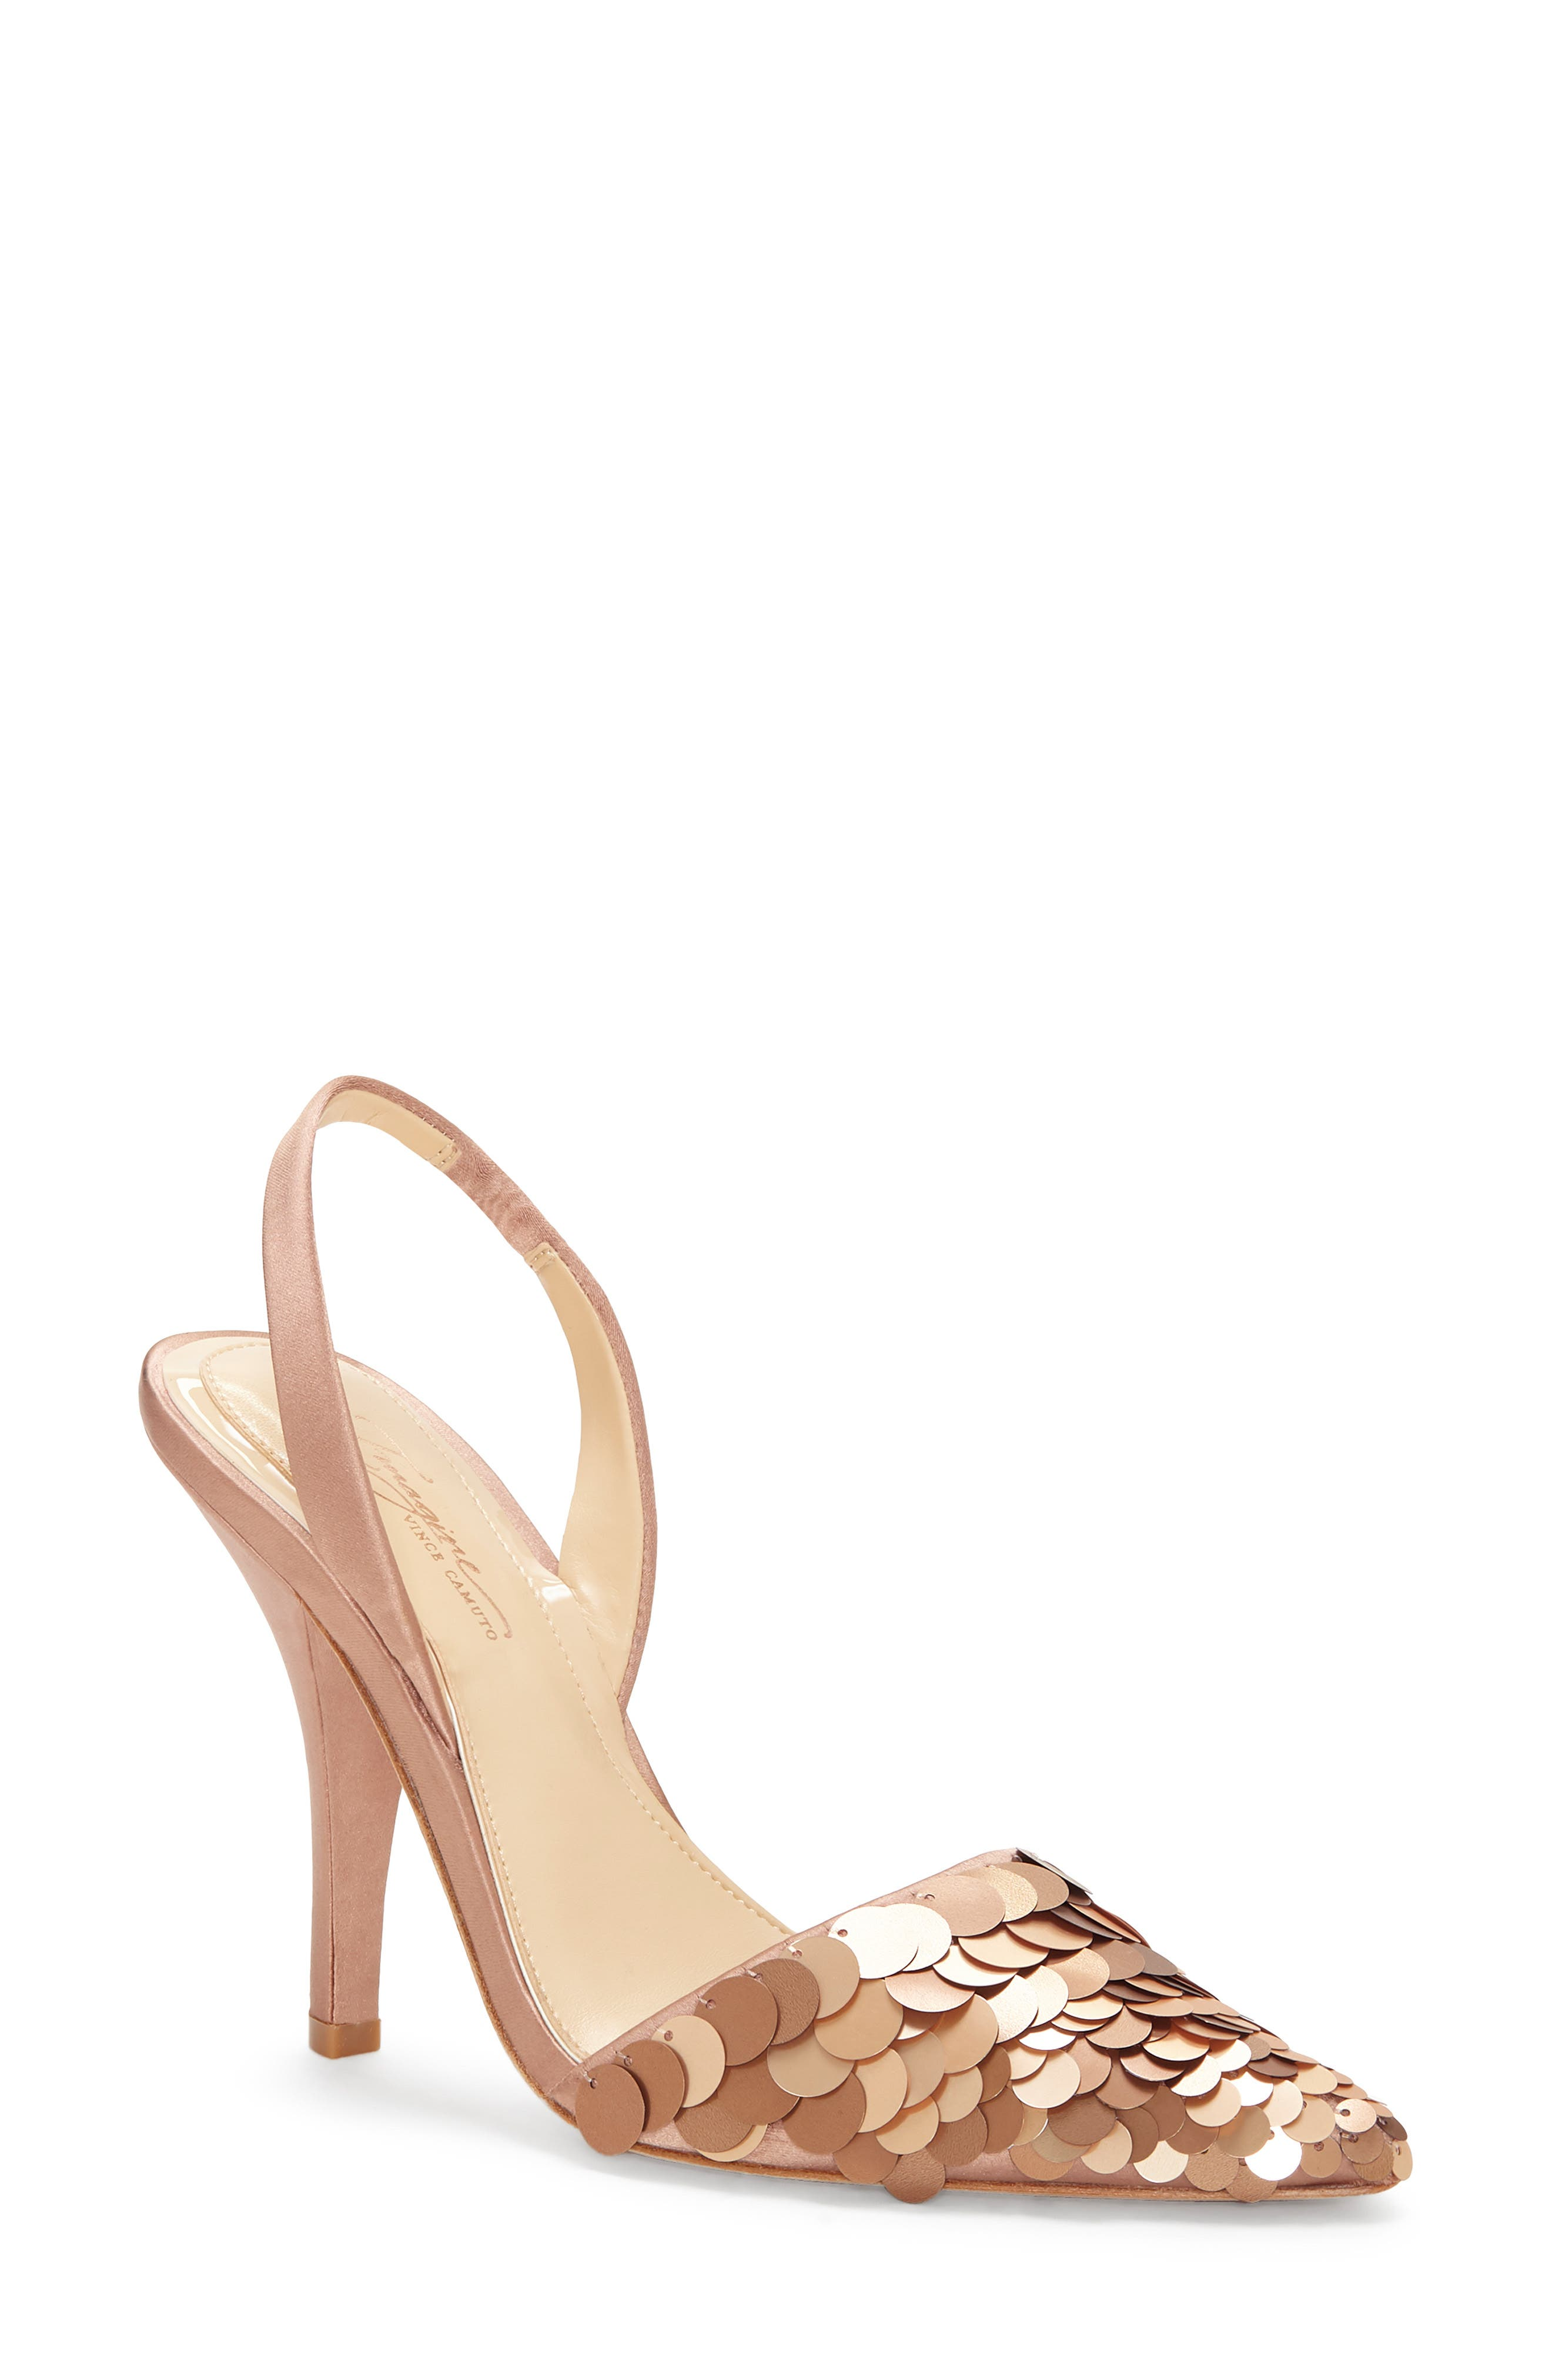 Imagine By Vince Camuto Lidya Pump, Pink